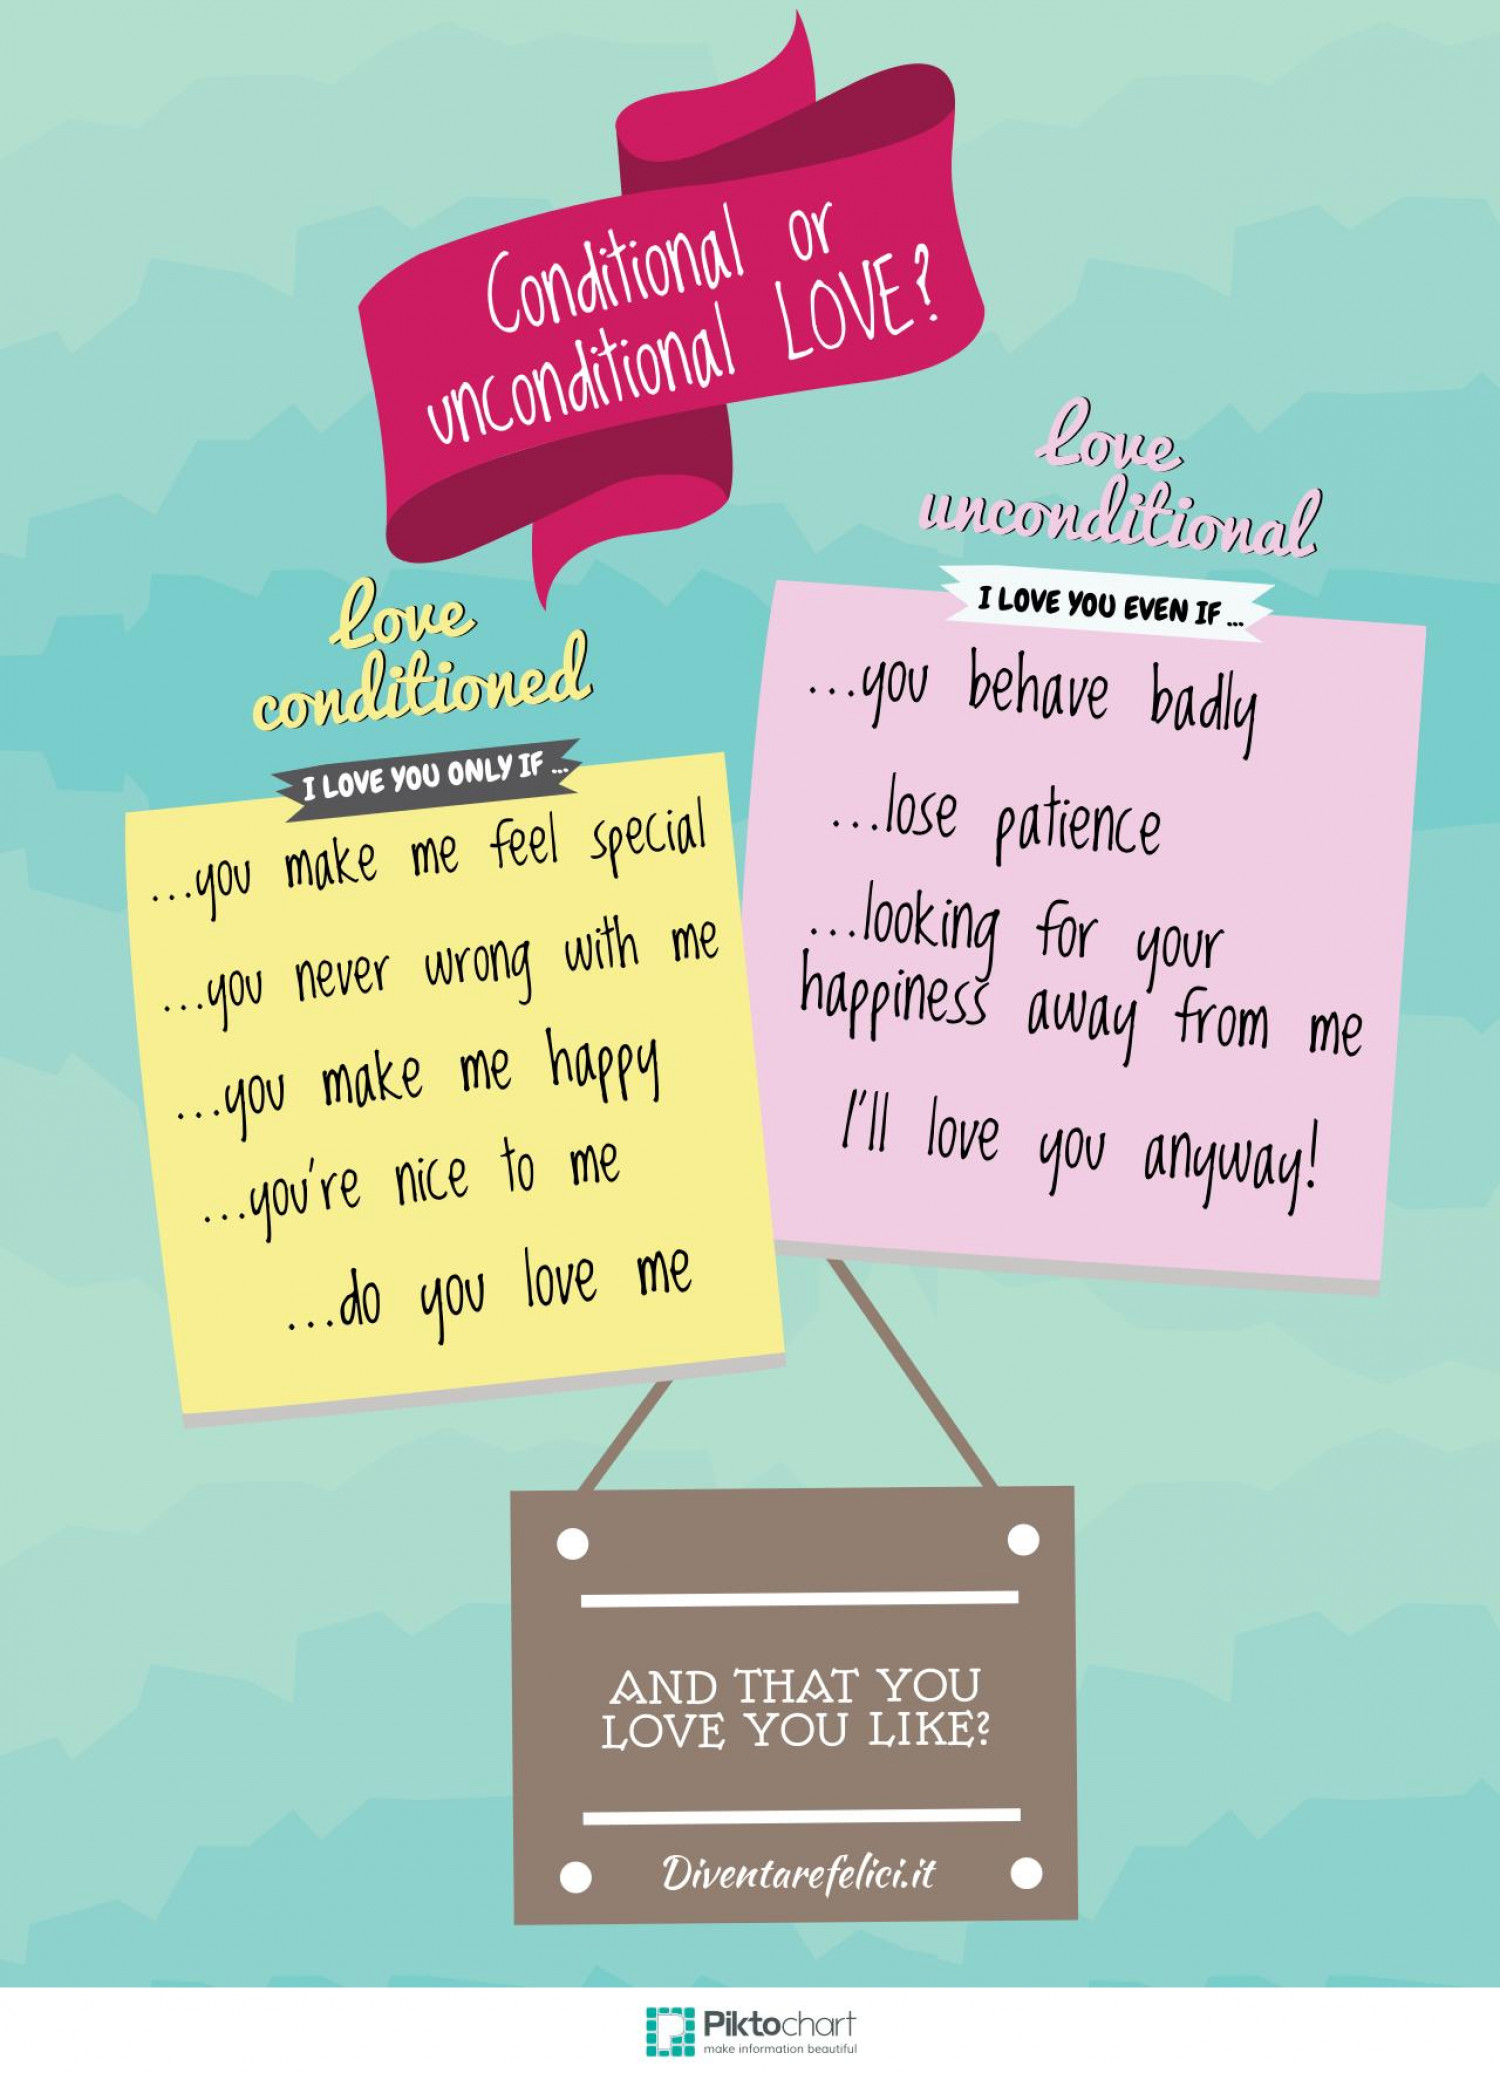 What's your love? Infographic